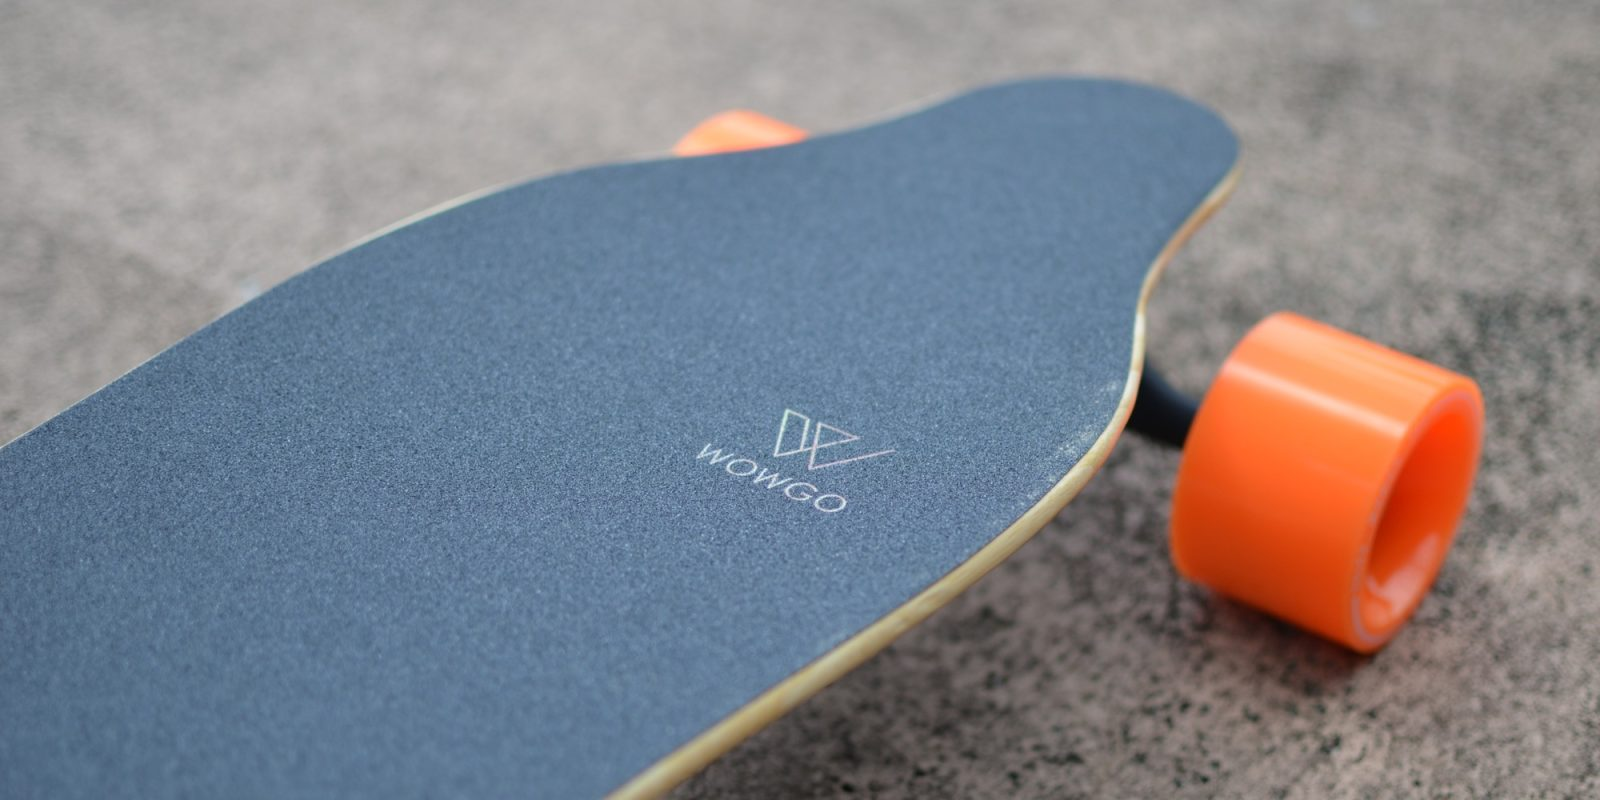 WowGo 3 electric skateboard: who knew budget e-longboards could be this good?